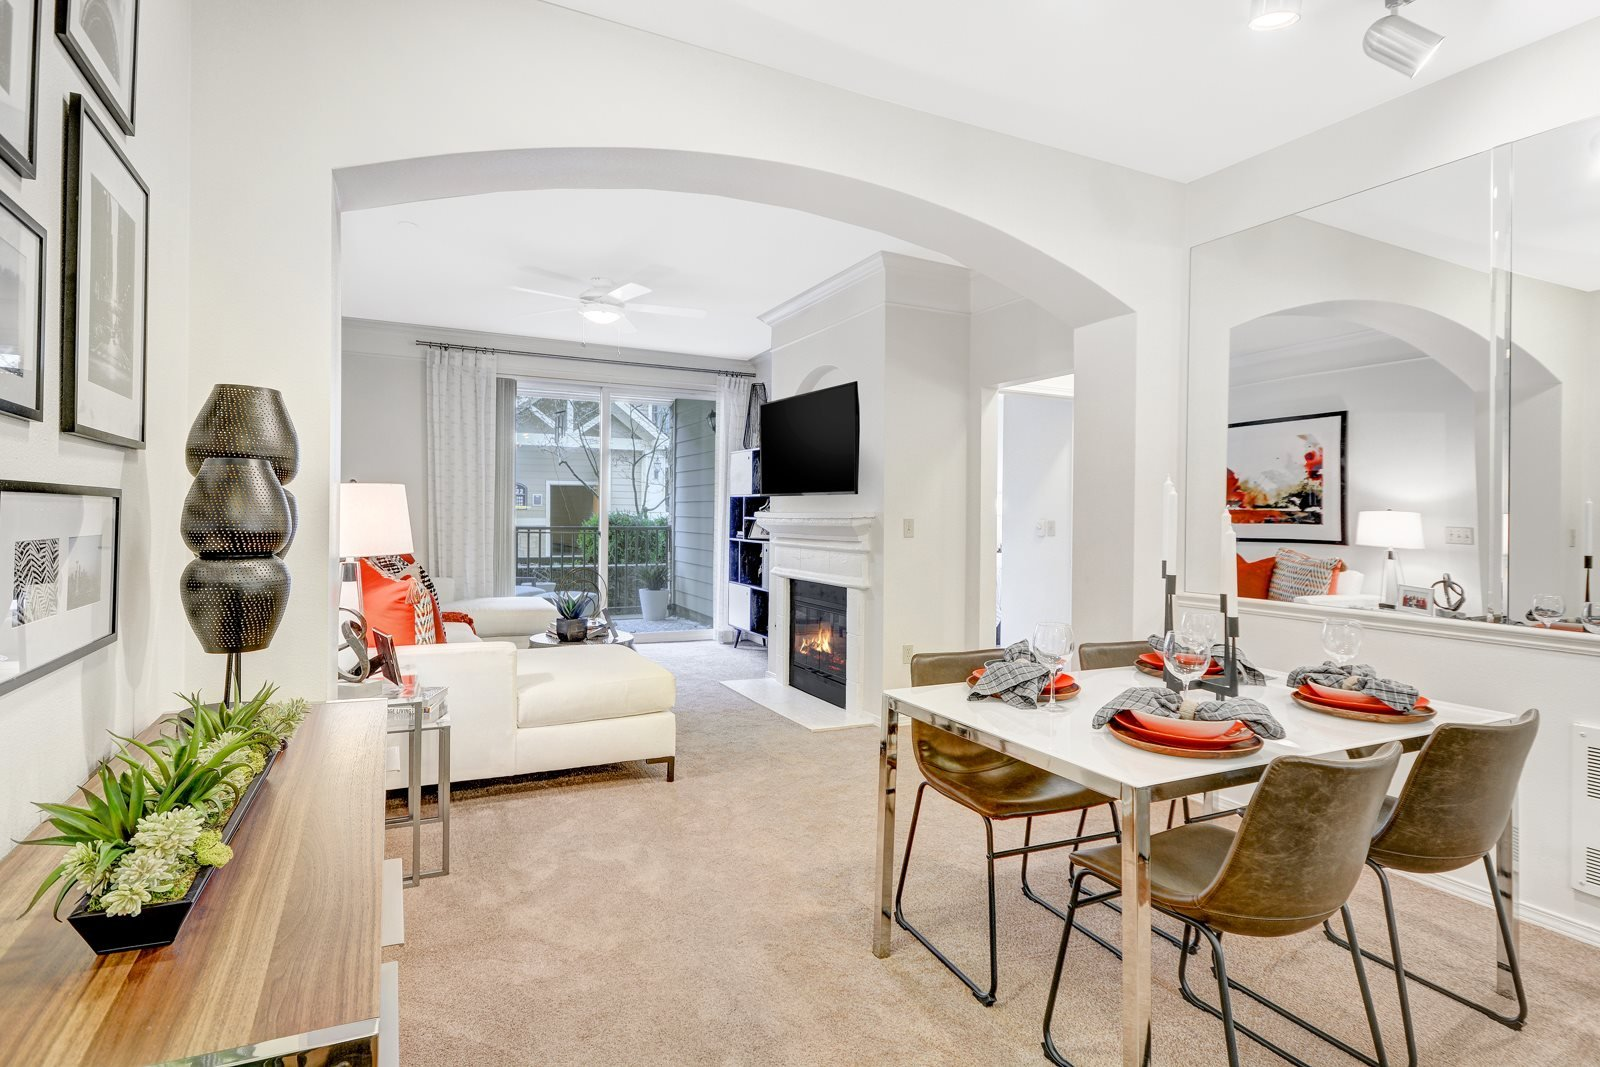 Modern Floor Plans Available at Reflections by Windsor, Redmond, Washington